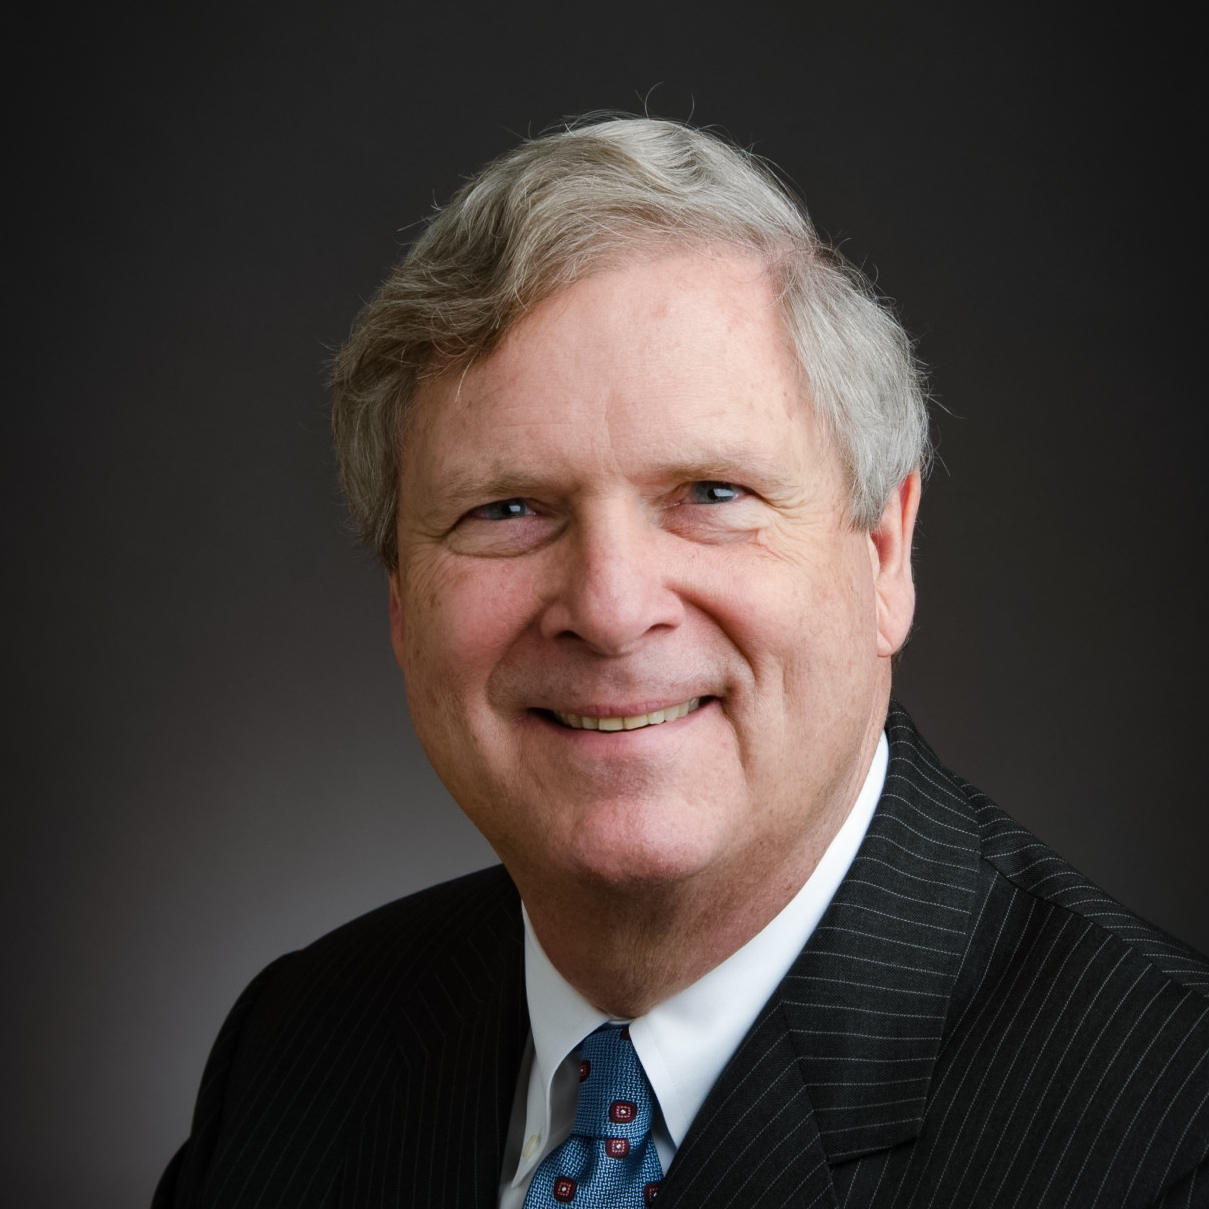 Tom-Vilsack-headshot-1.jpg